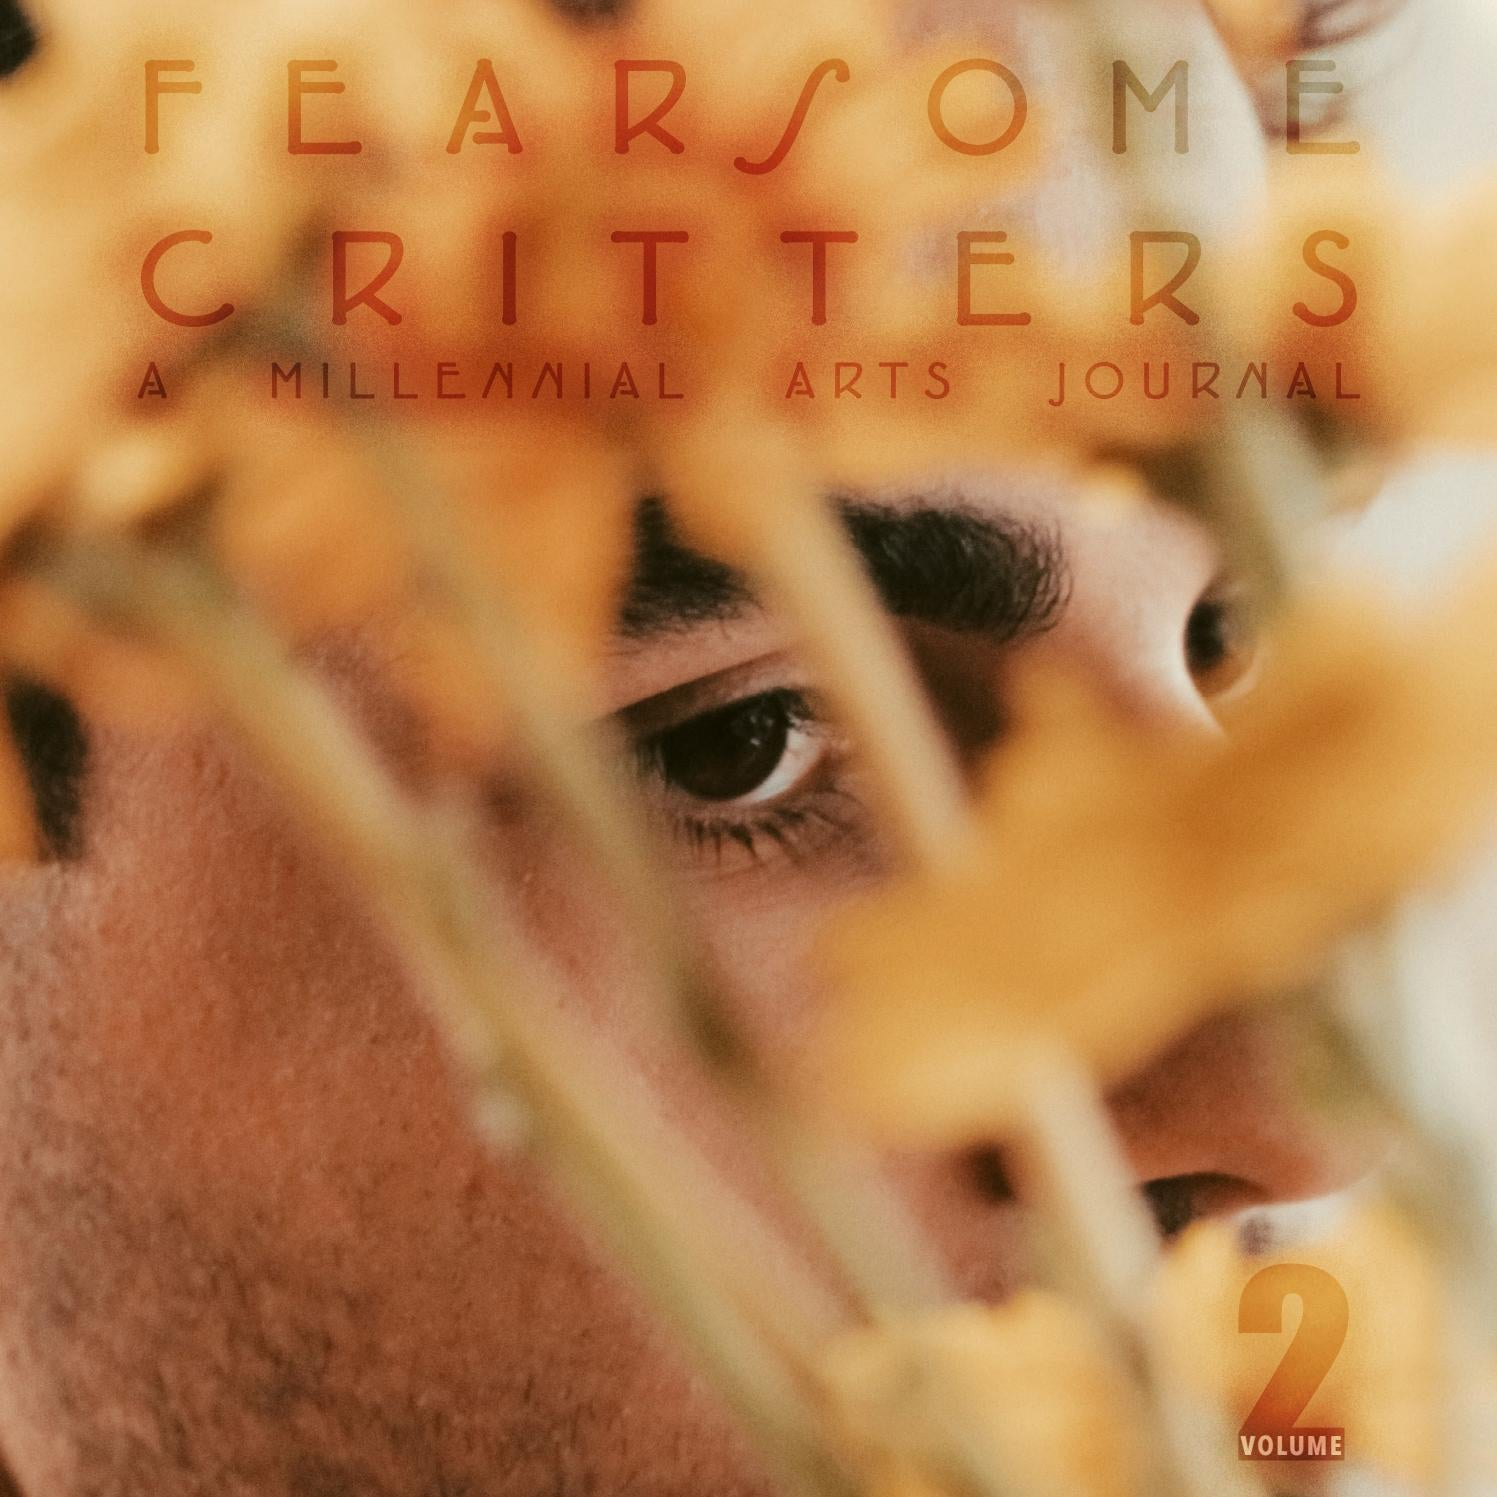 Fearsome Critters: A Millennial Arts Journal — VOLUME TWO by